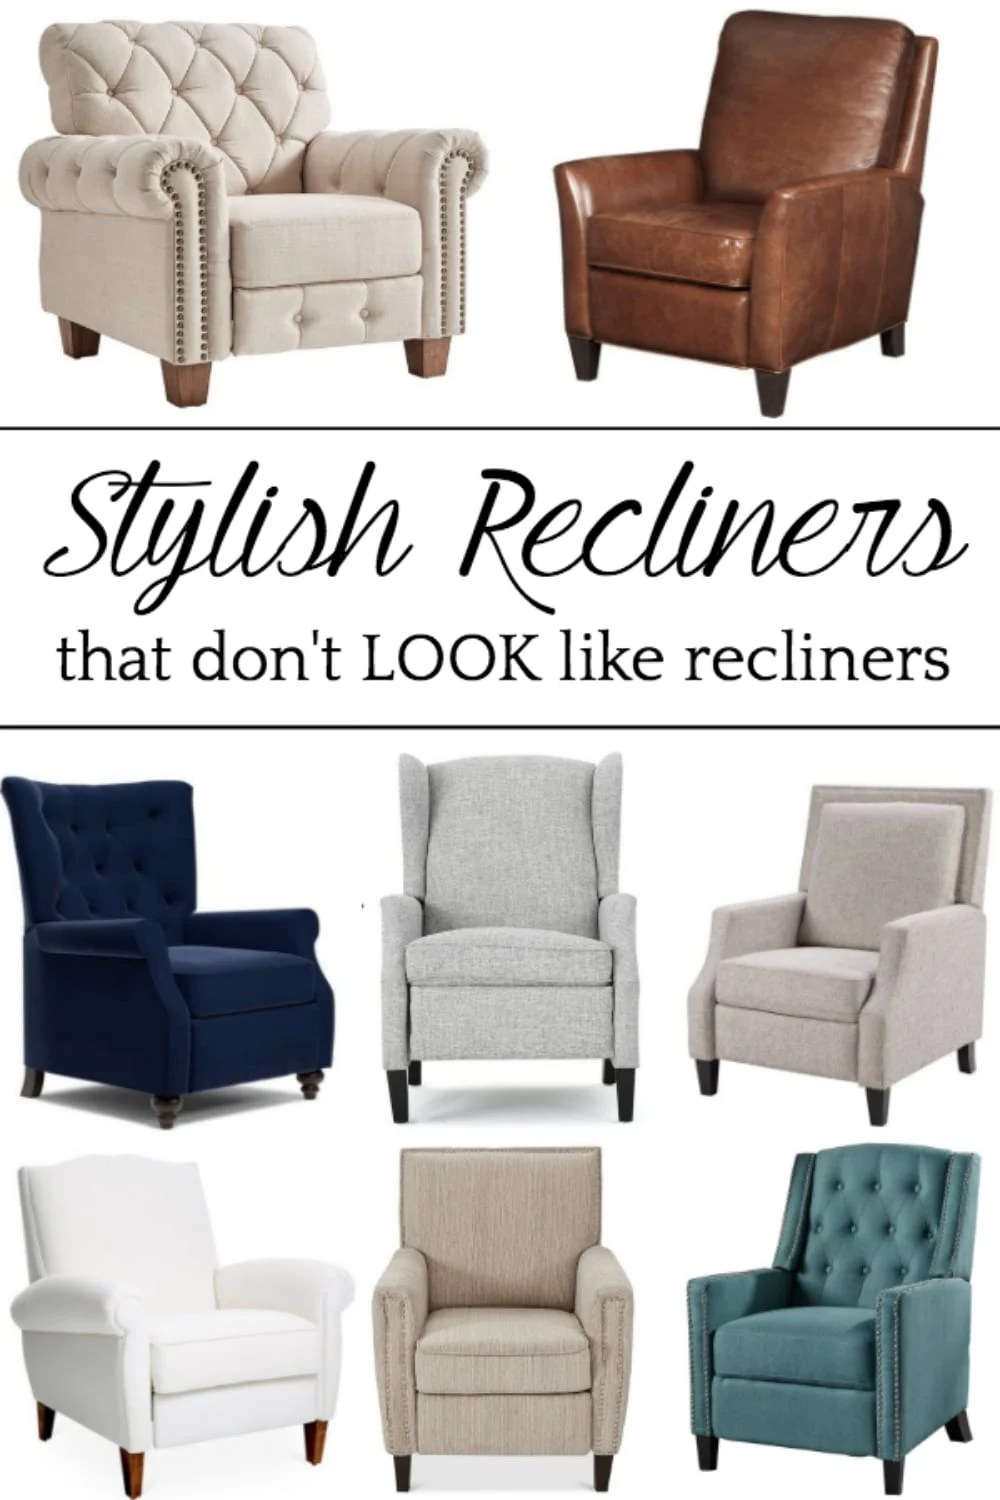 A shopping guide round-up with 22 stylish recliners on a budget that don't LOOK like recliners. #recliners #shoppingguide #furniture